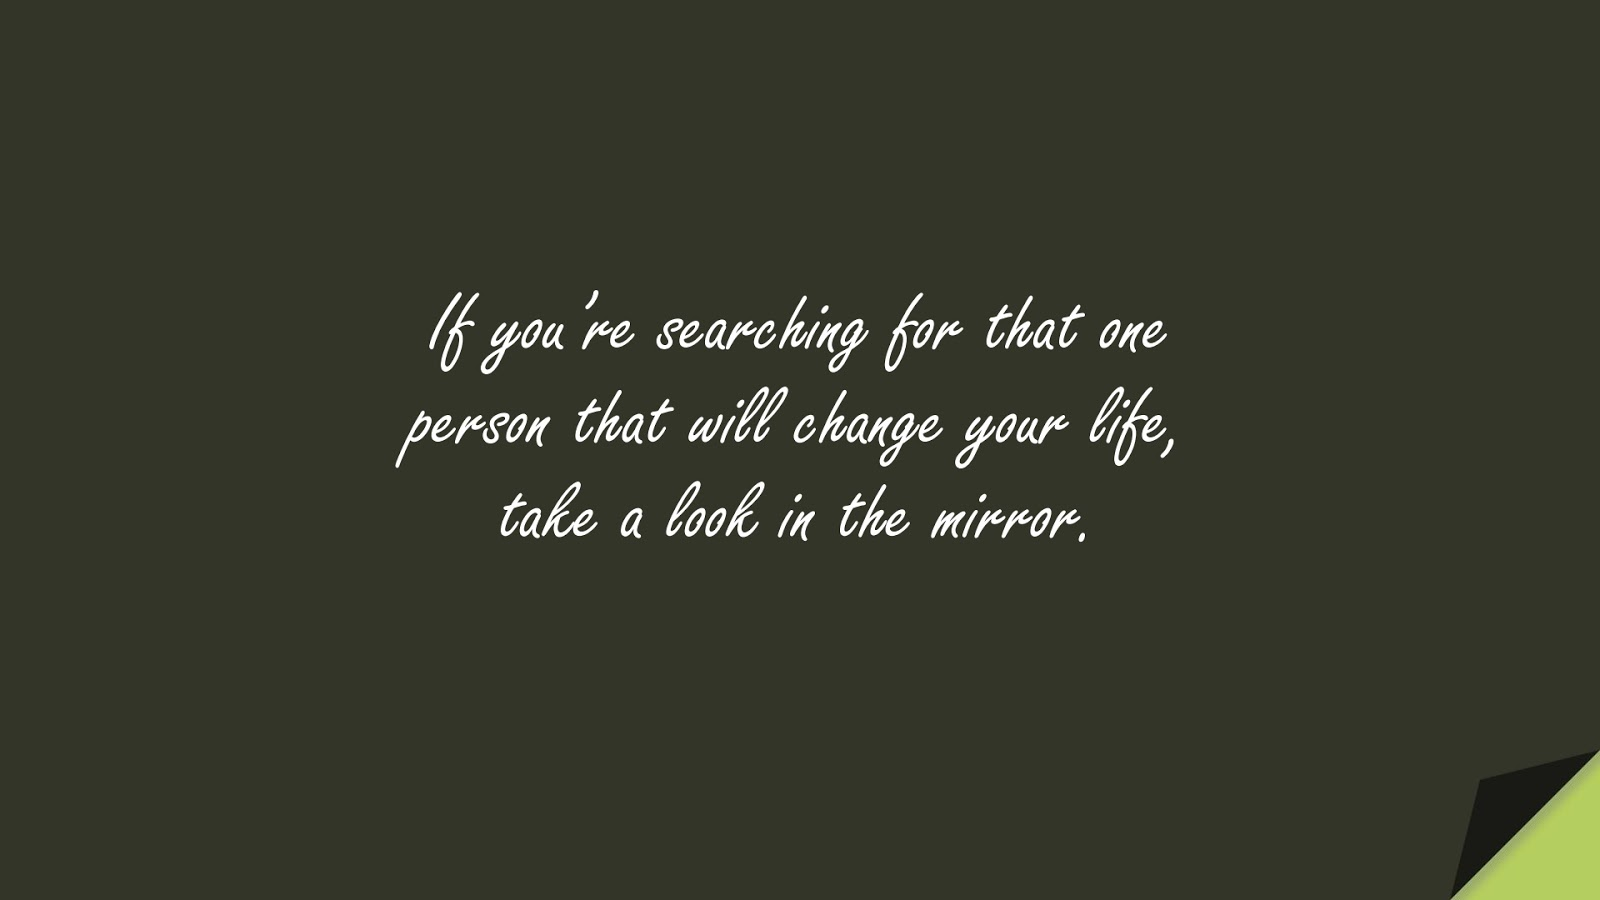 If you're searching for that one person that will change your life, take a look in the mirror.FALSE